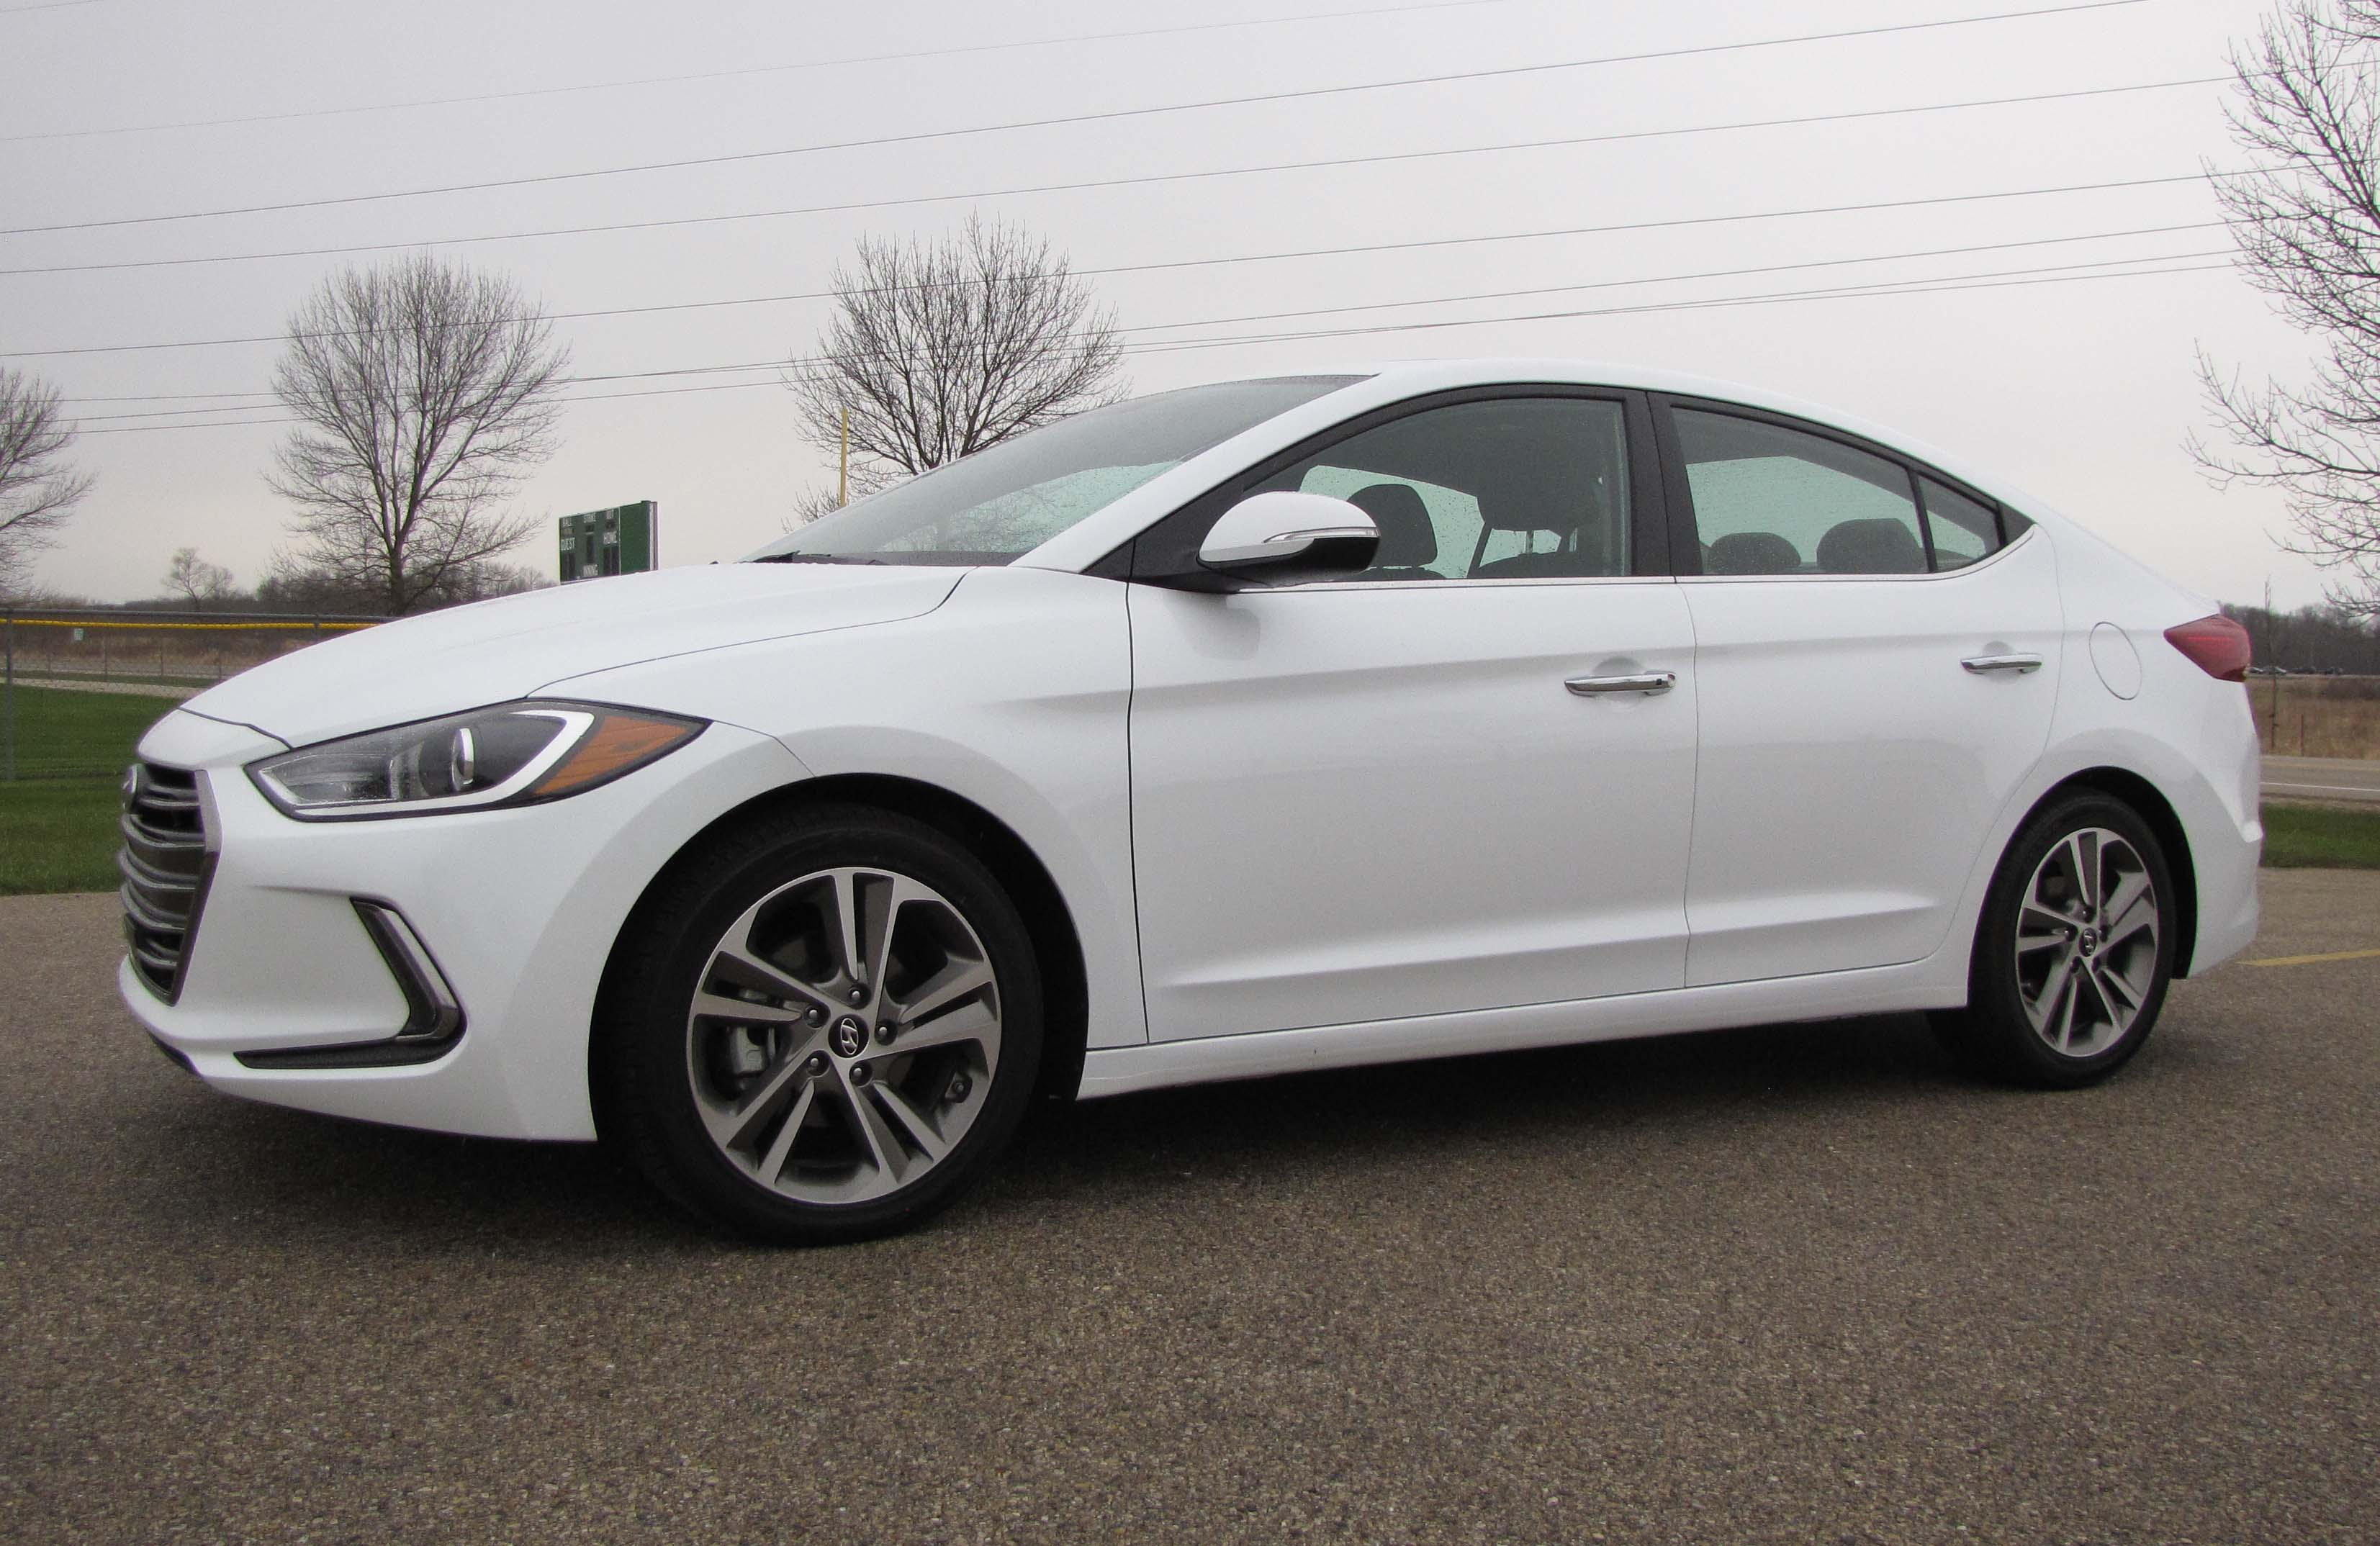 Hyundai Elantra Gas Mileage >> 2017 Hyundai Elantra Limited | Savage On Wheels